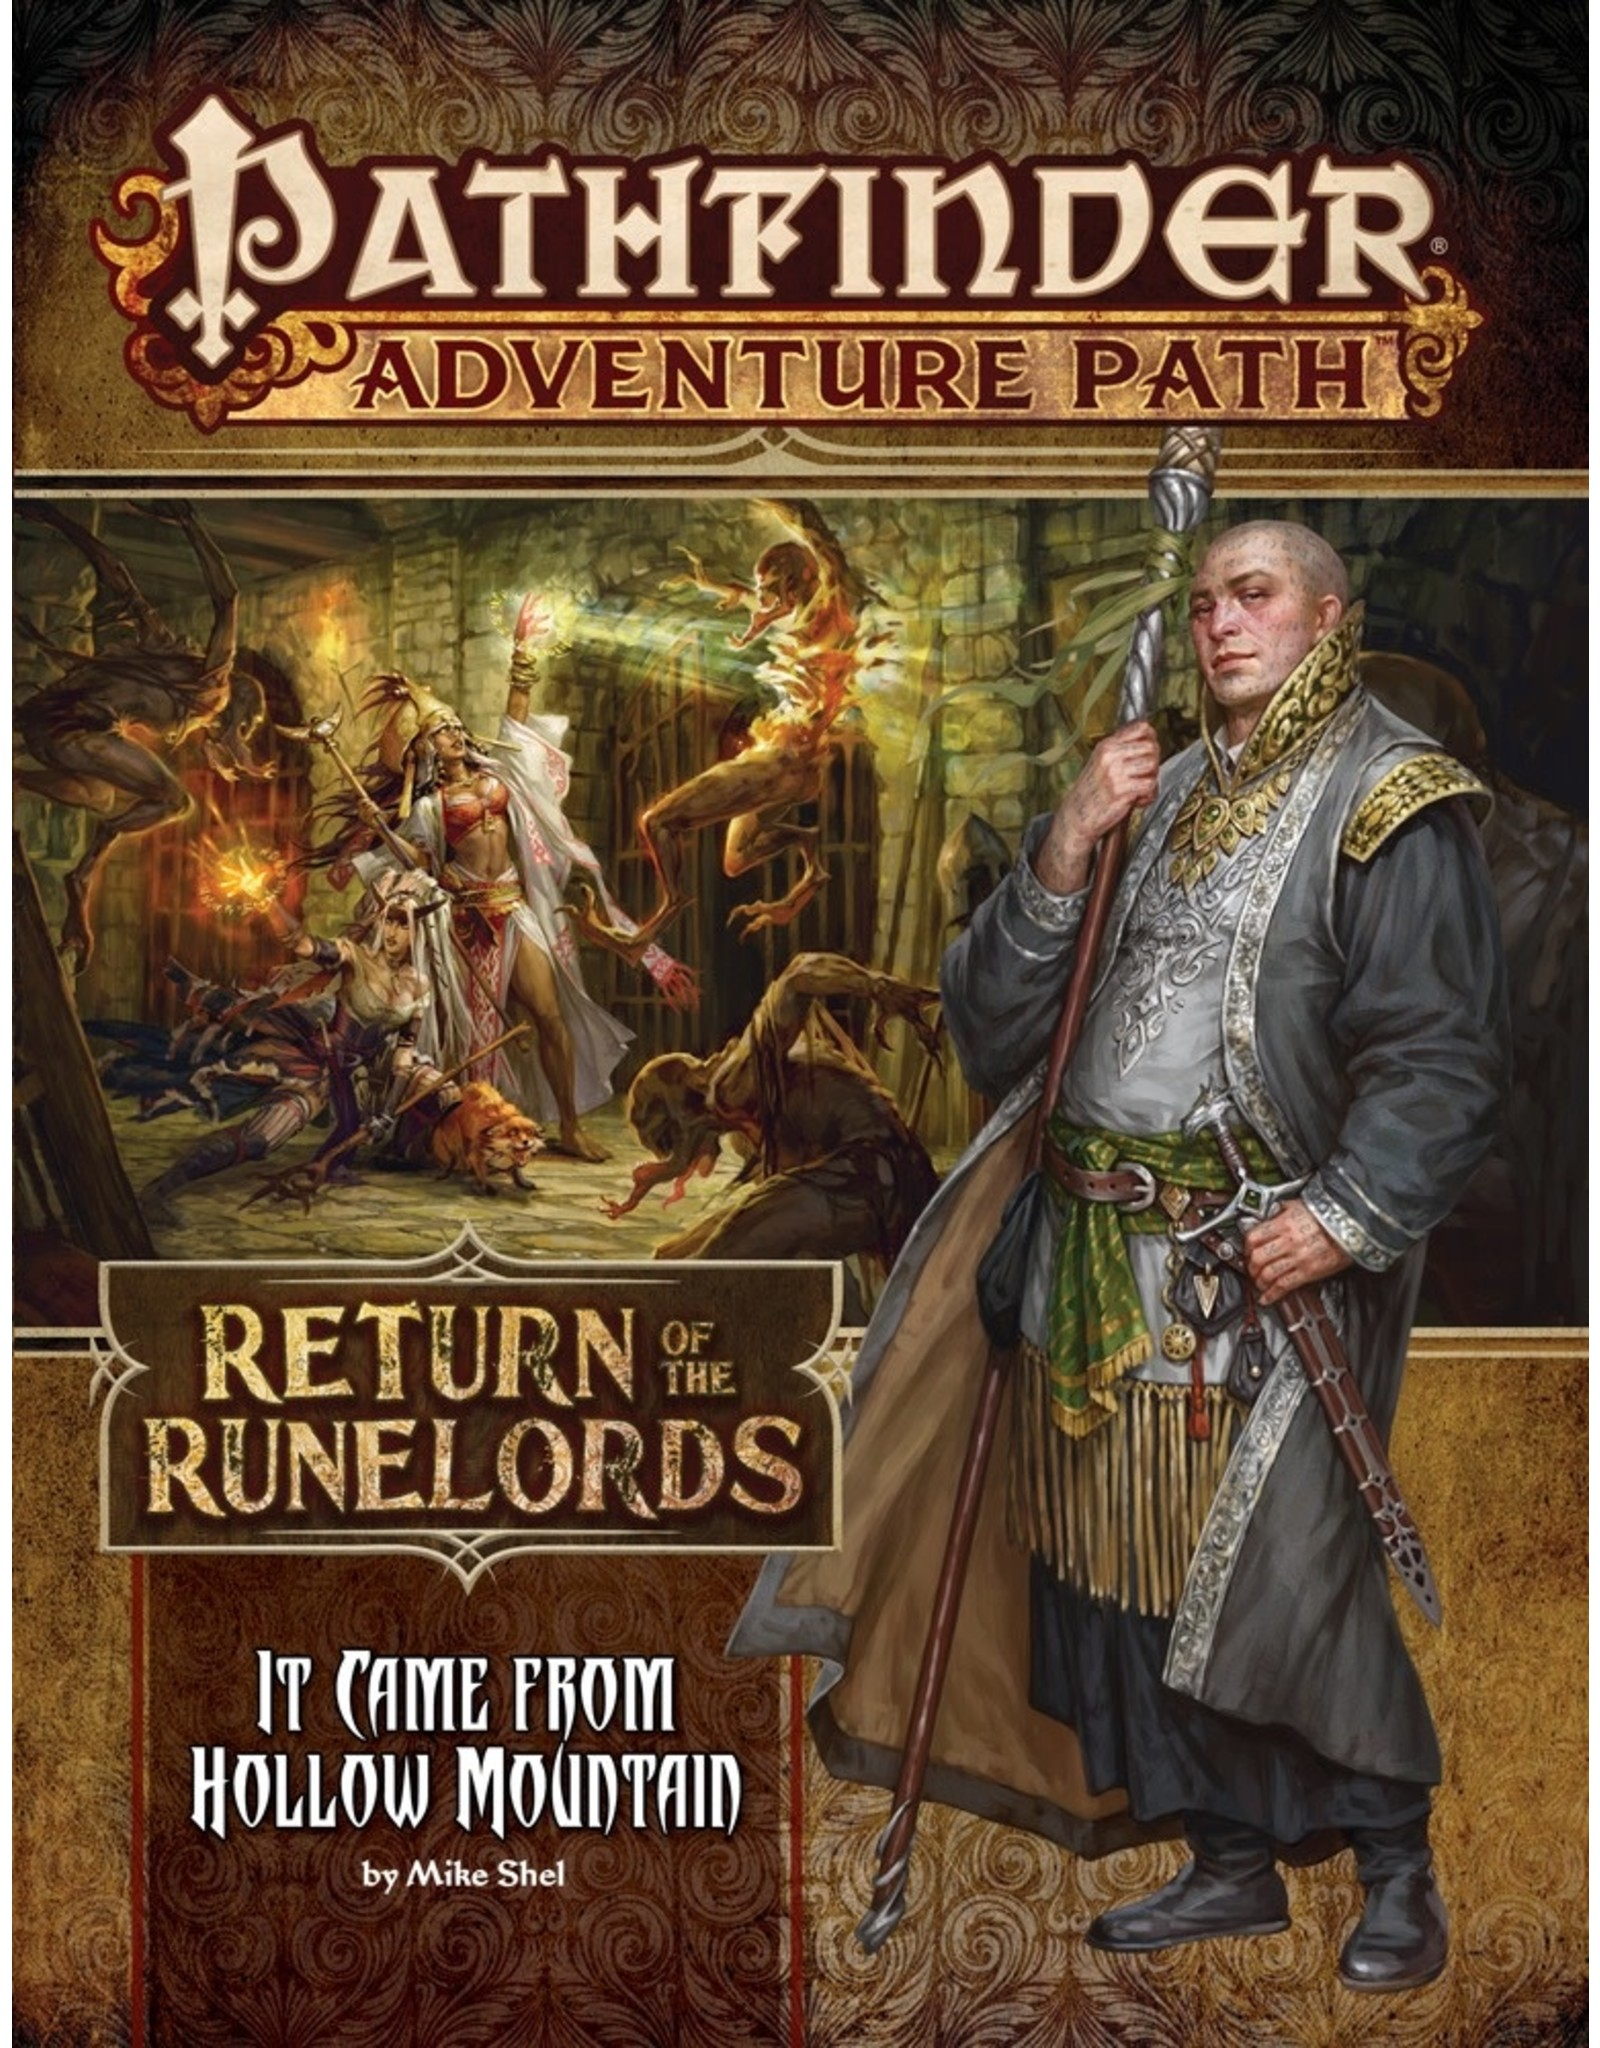 Pathfinder Adventure Path #134: Return of the Runelords - It Came from Hollow Mountain